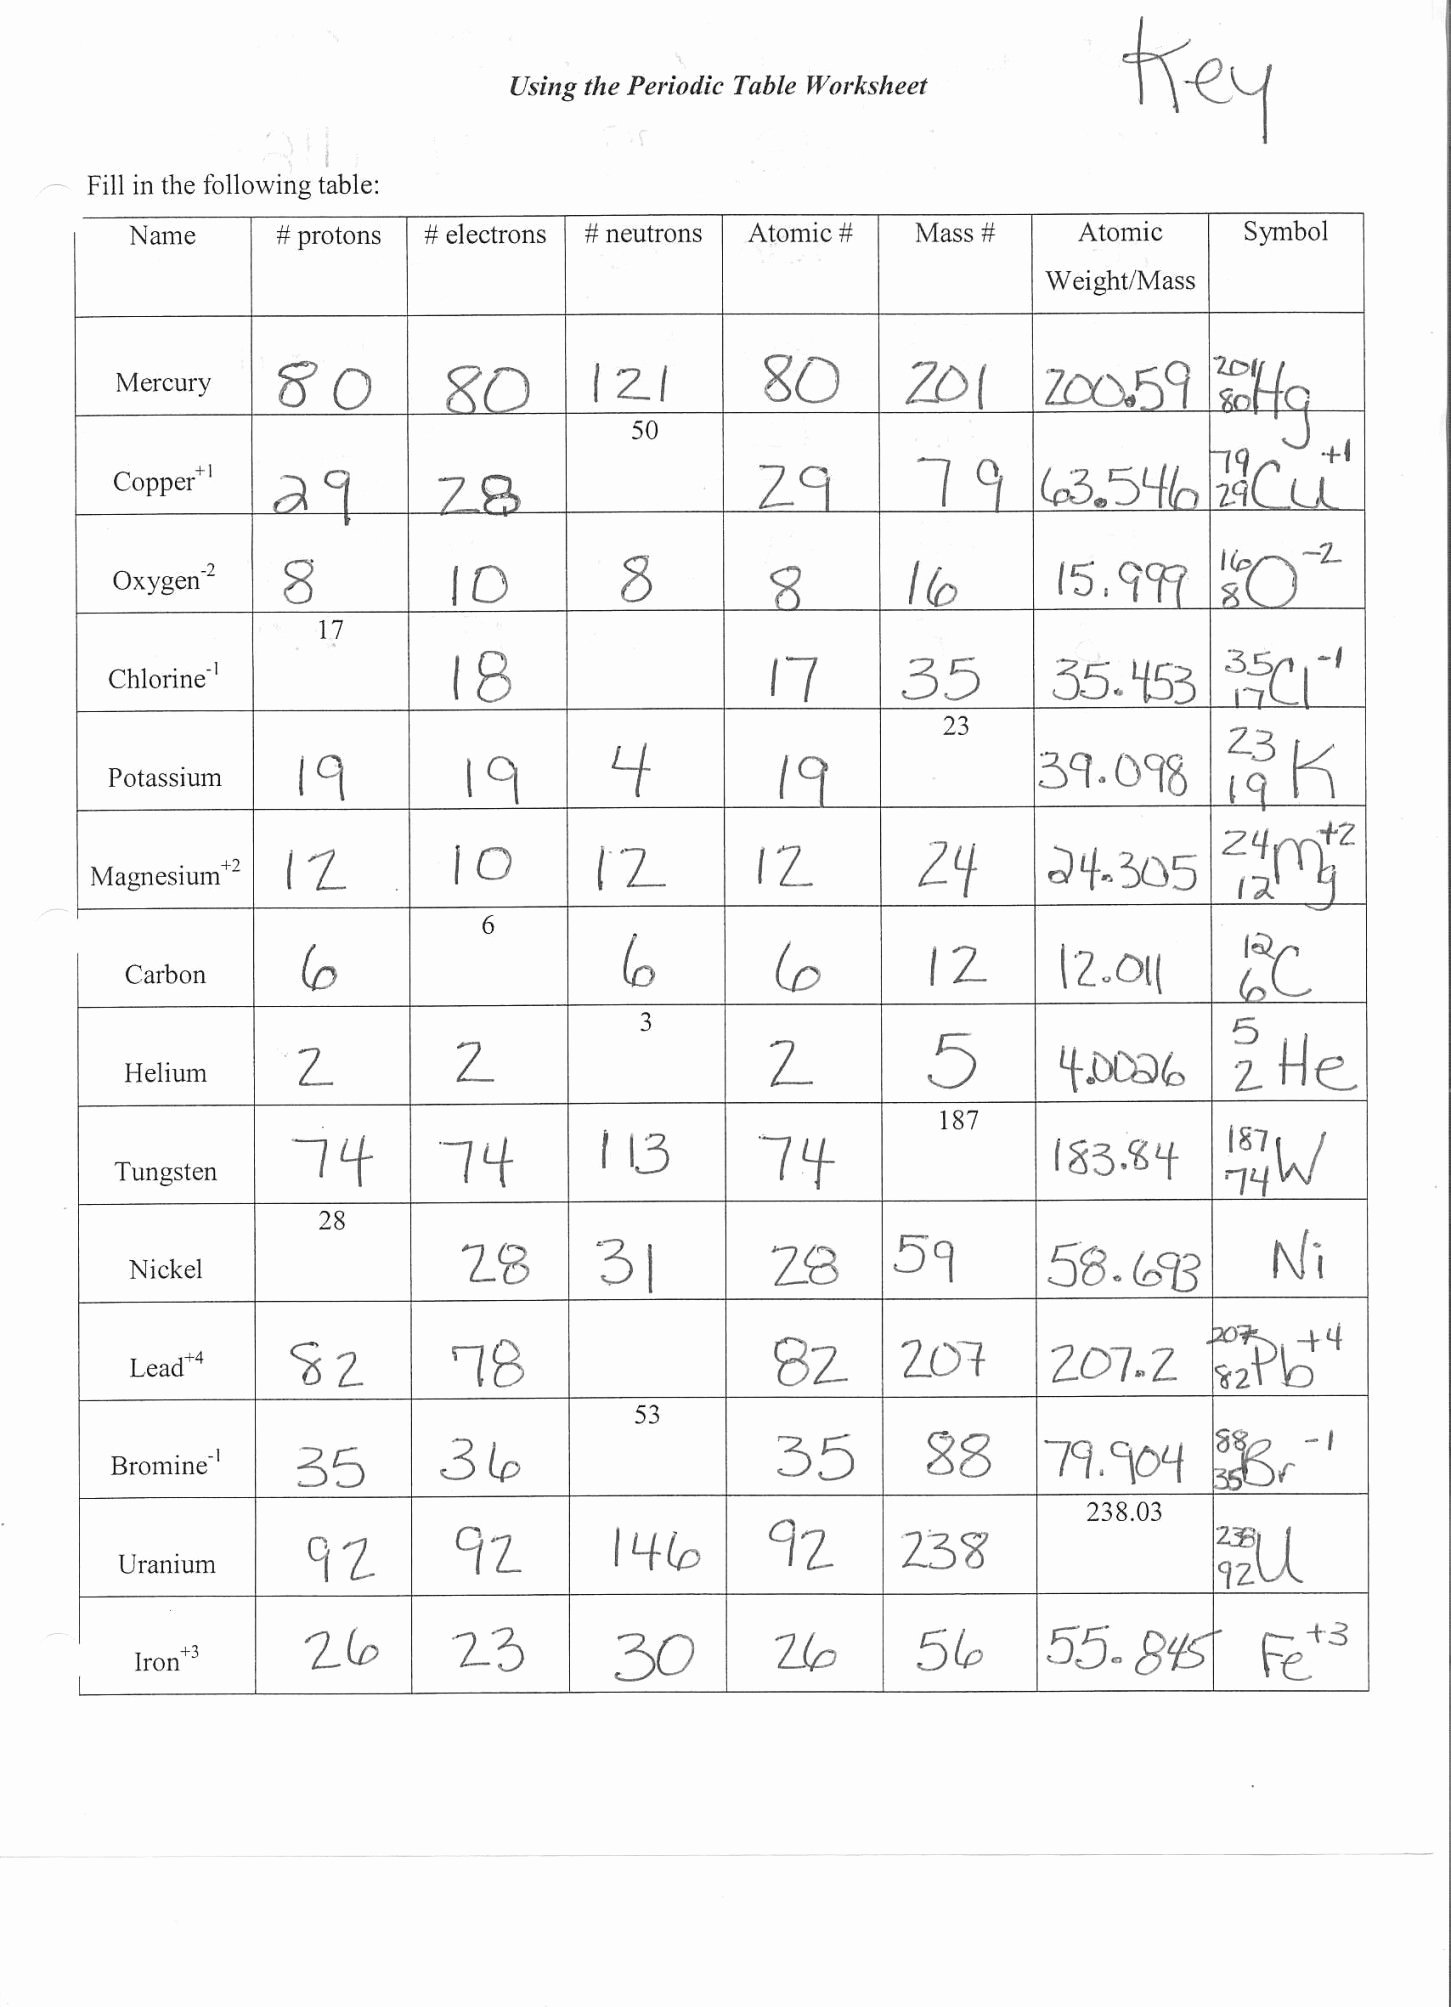 Basic atomic Structure Worksheet Answers Unique Basic atomic Structure Worksheet Key